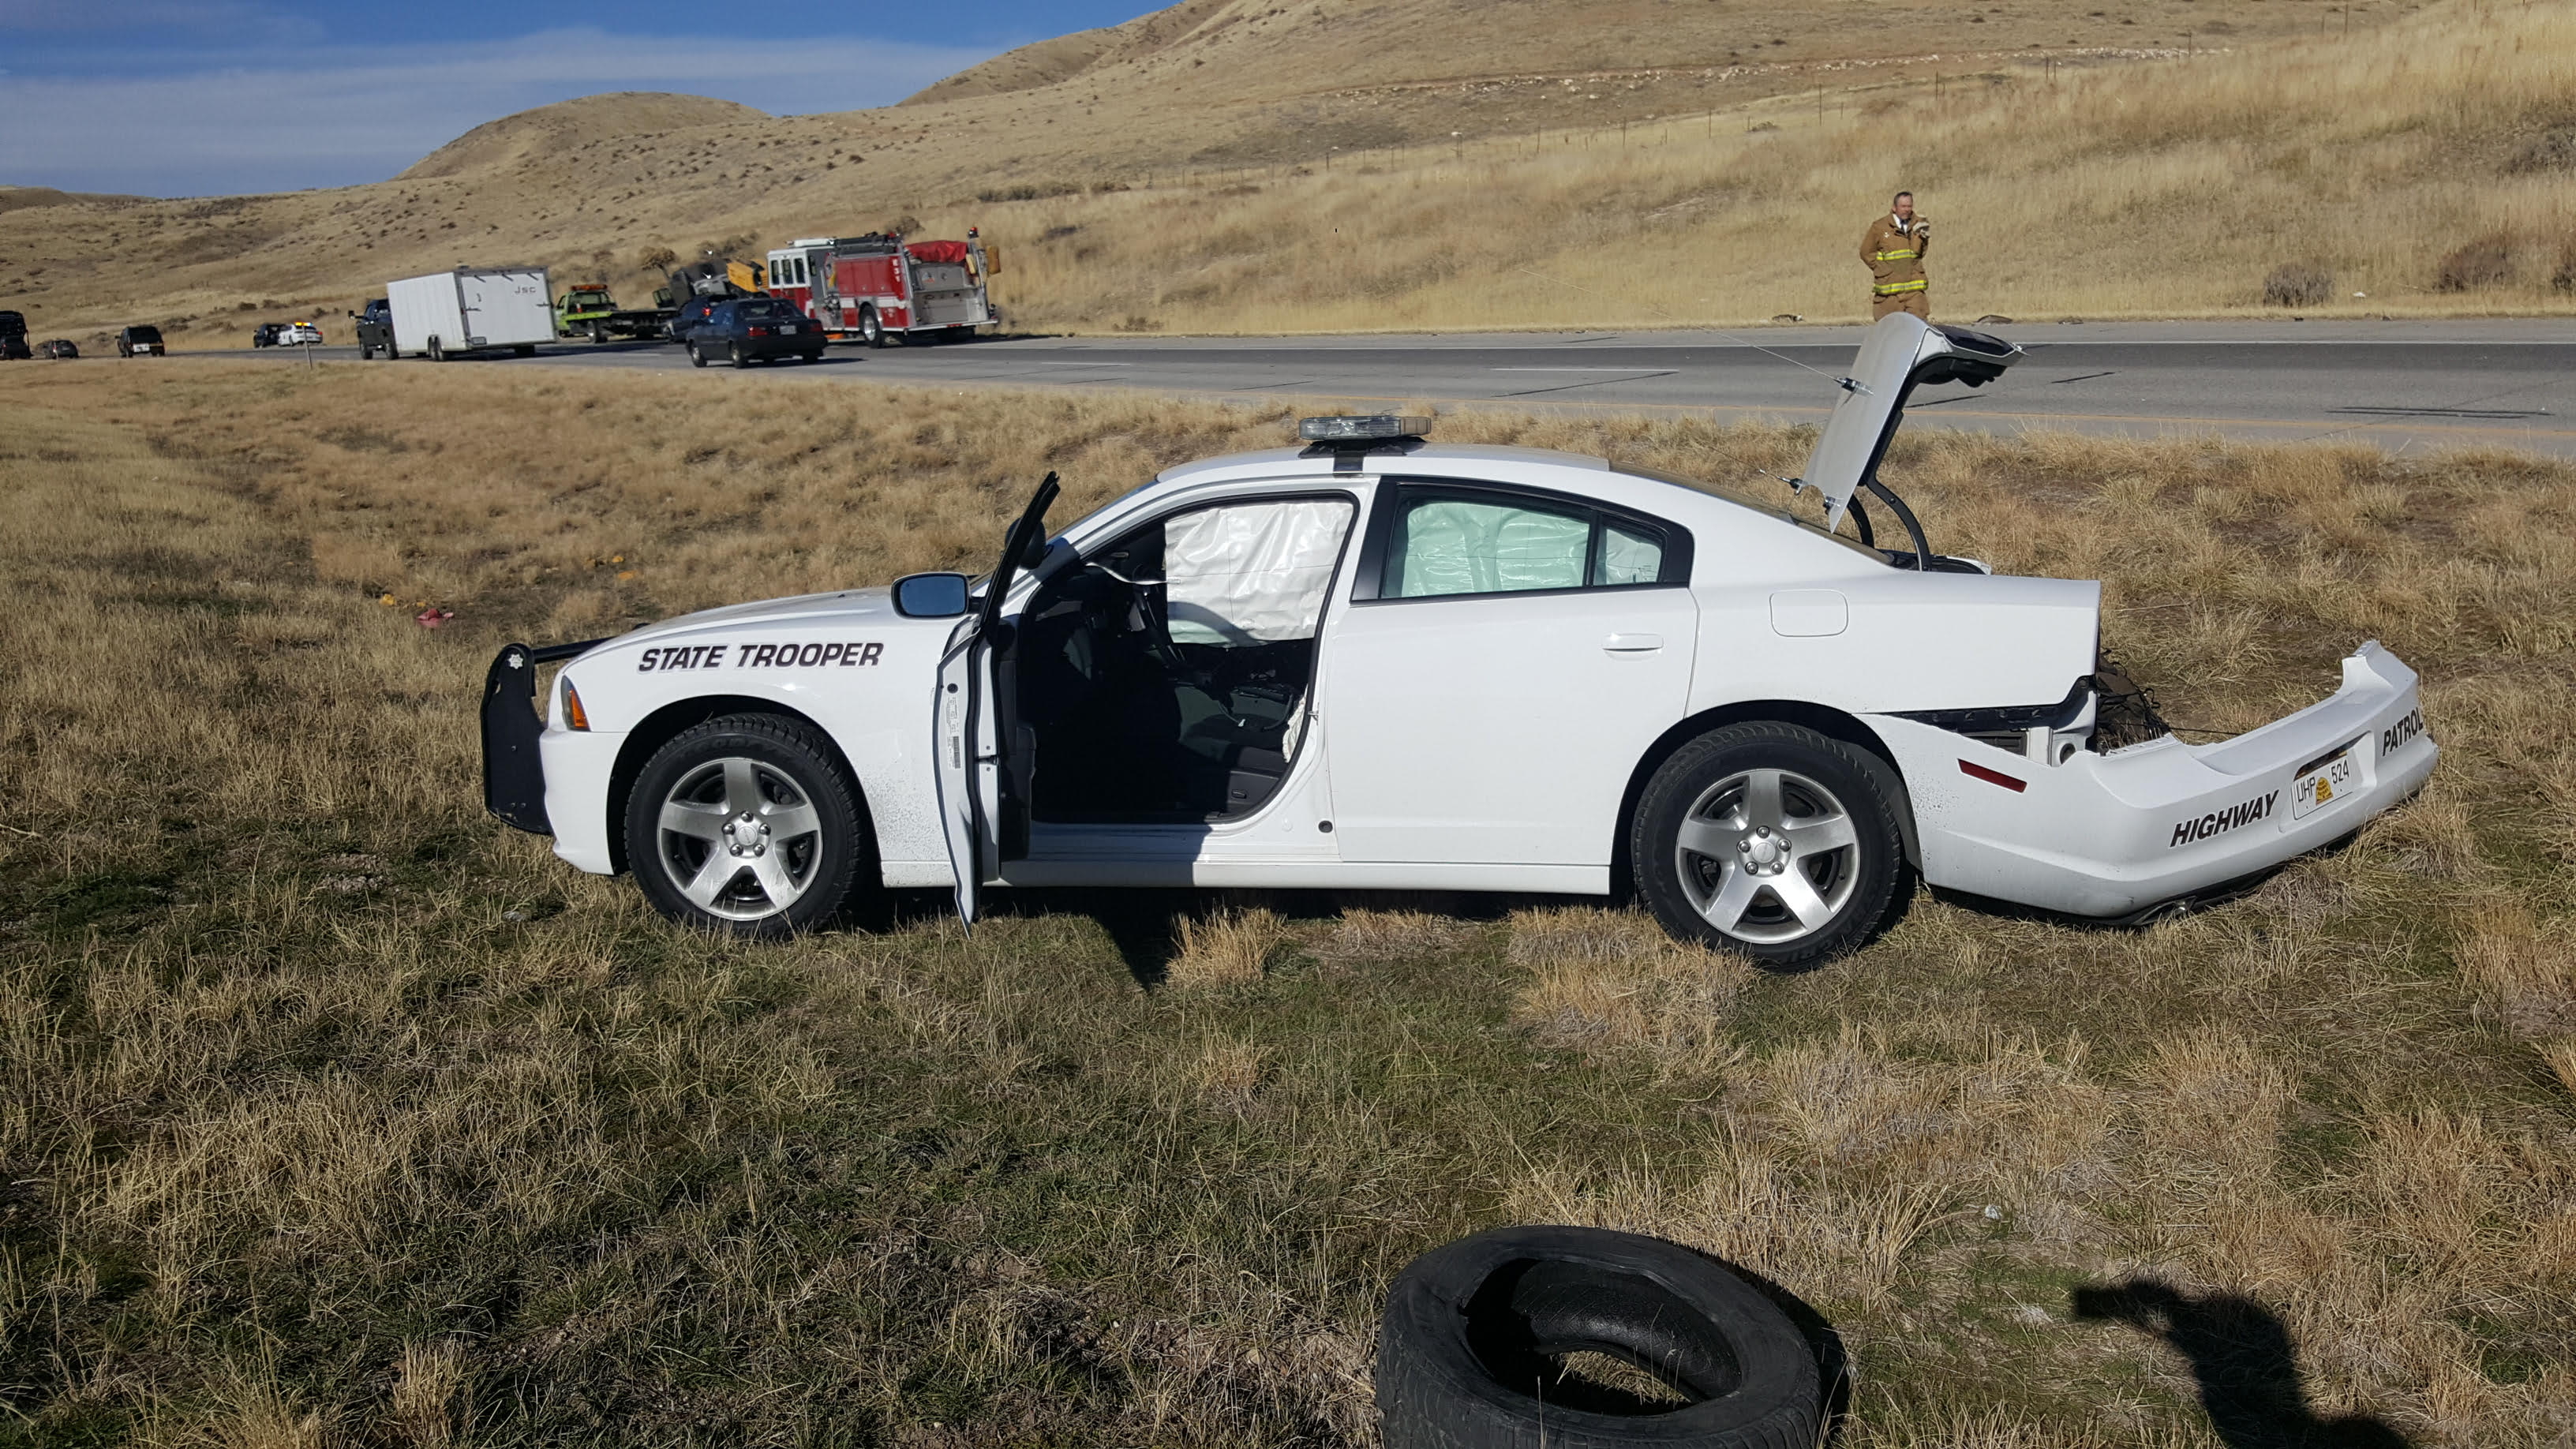 While providing traffic control for a vehicle fire, a UHP trooper's patrol car is struck by a semi on Interstate 84 near milepost 34, Box Elder County, Utah, Nov. 21, 2016 | Photo courtesy of the Utah Highway Patrol, St. George News